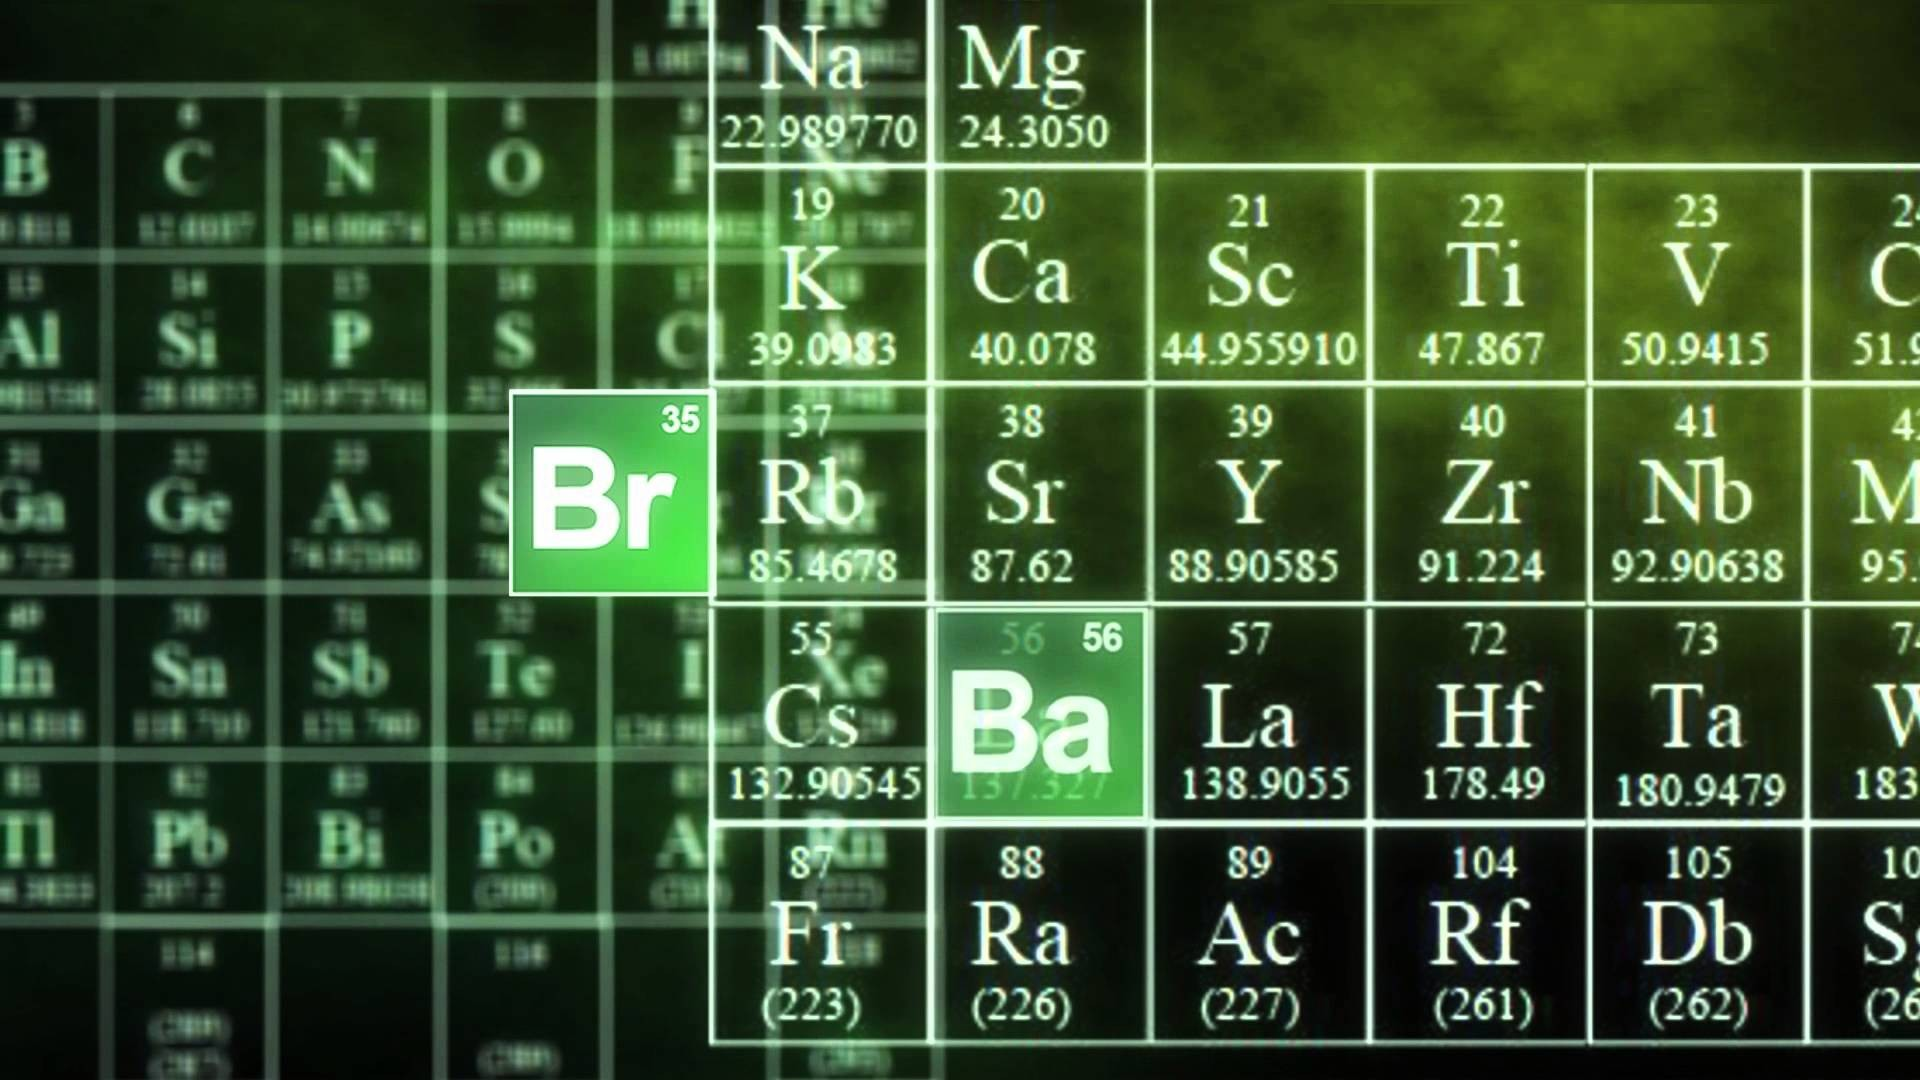 Periodic table wallpaper download free beautiful full hd wallpaper versions urtaz Image collections